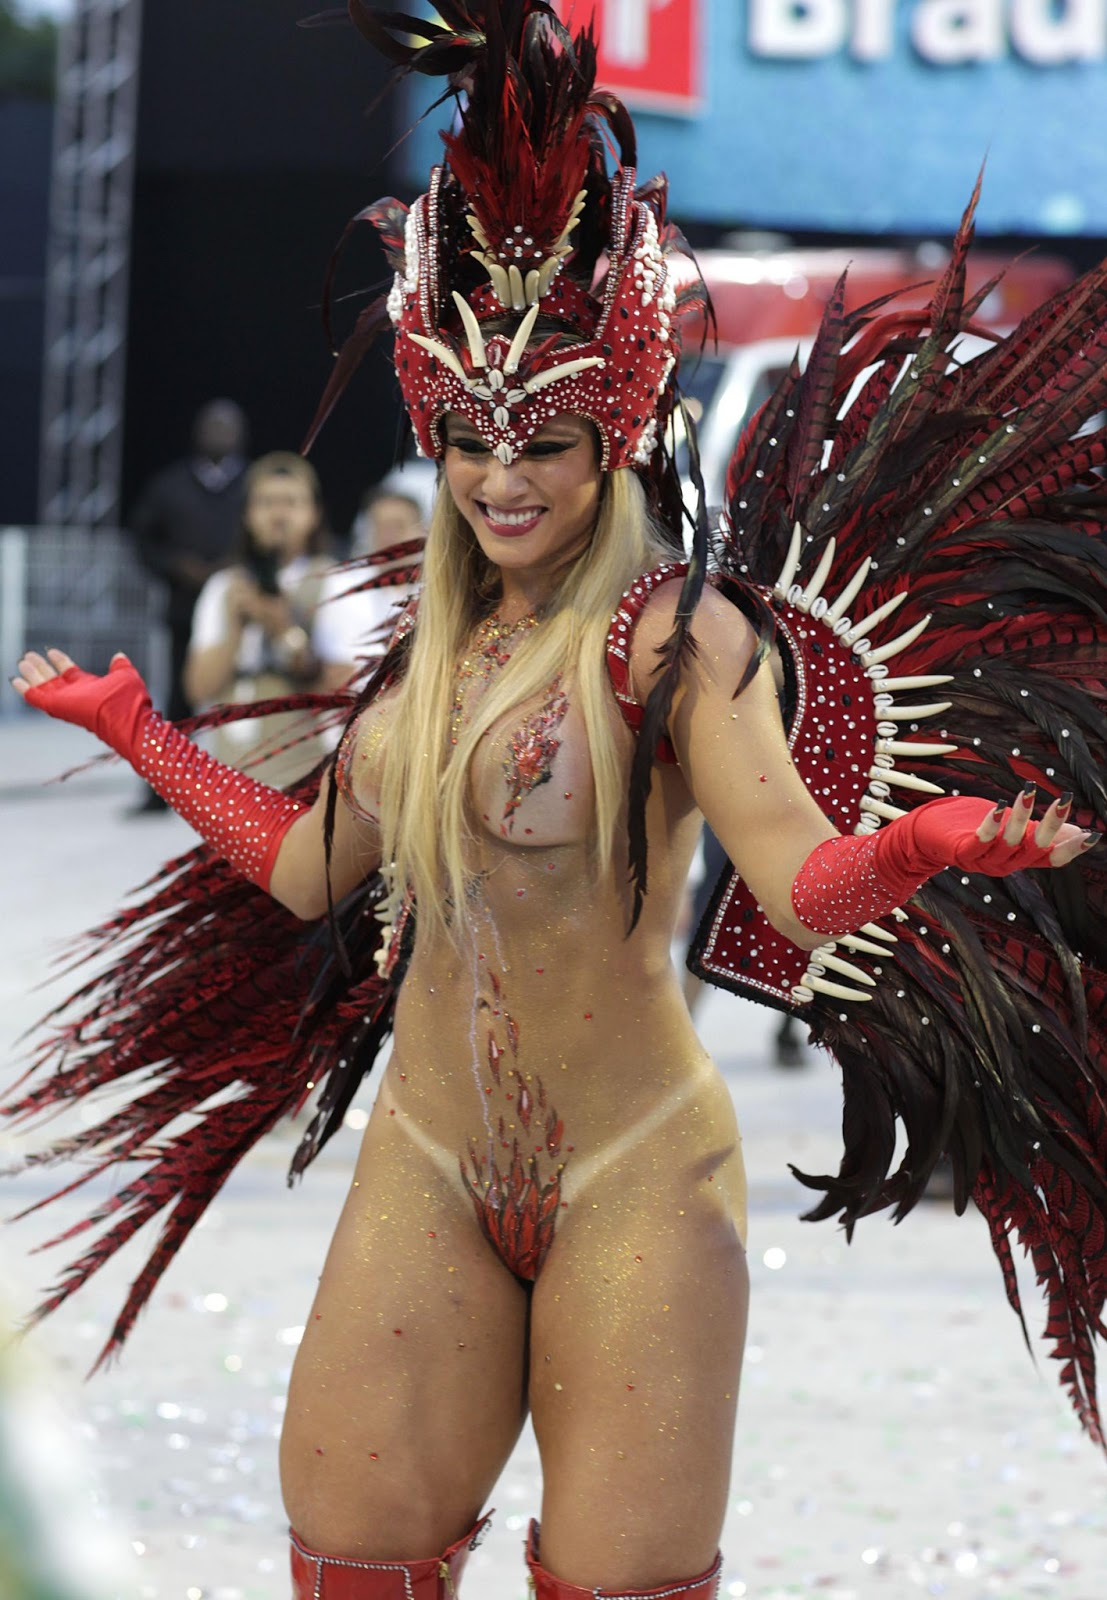 Remarkable, very Rio carnival nude naked